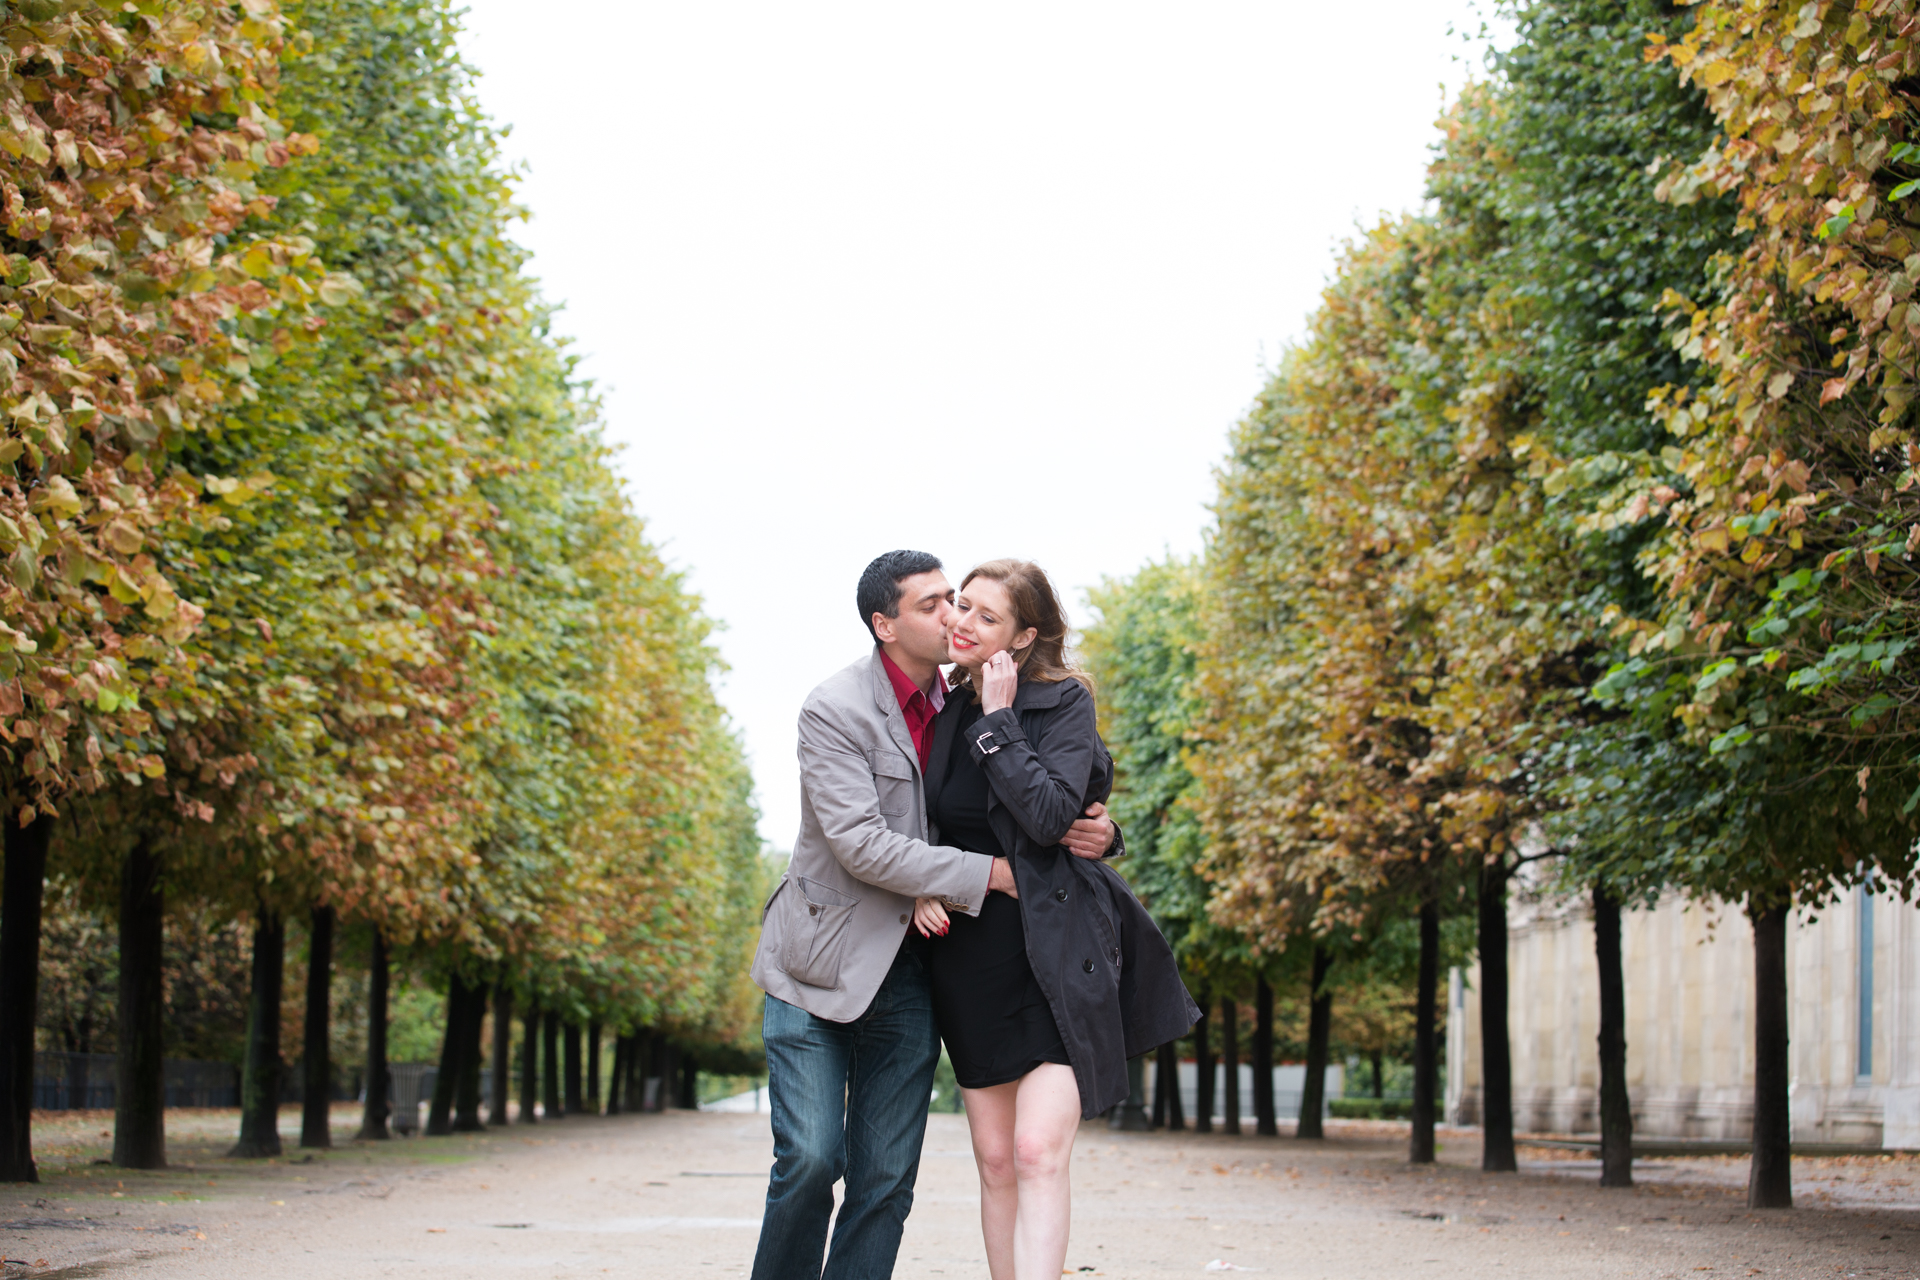 photographe-mariage-oise-paris-chantilly-senlis-keith-flament0288